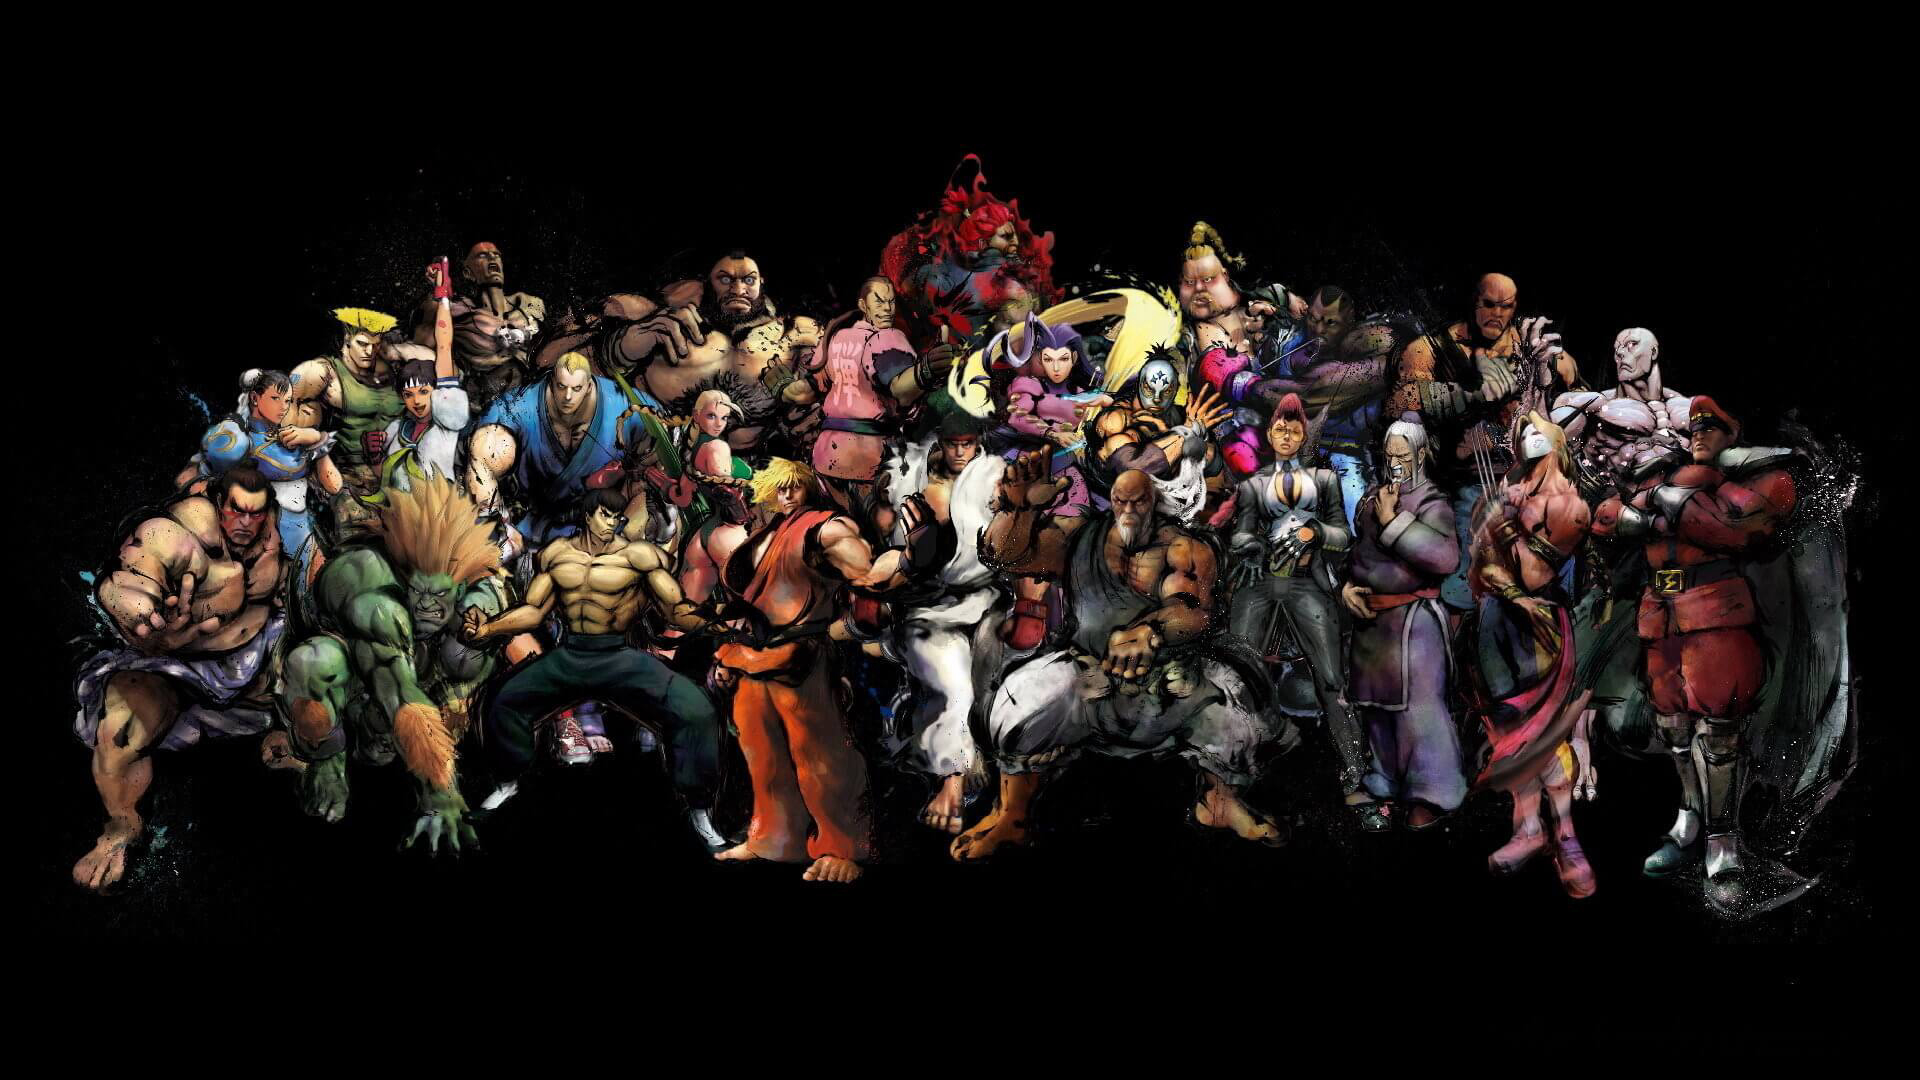 Sensations and drama at the resumption of Street Fighter League Pro